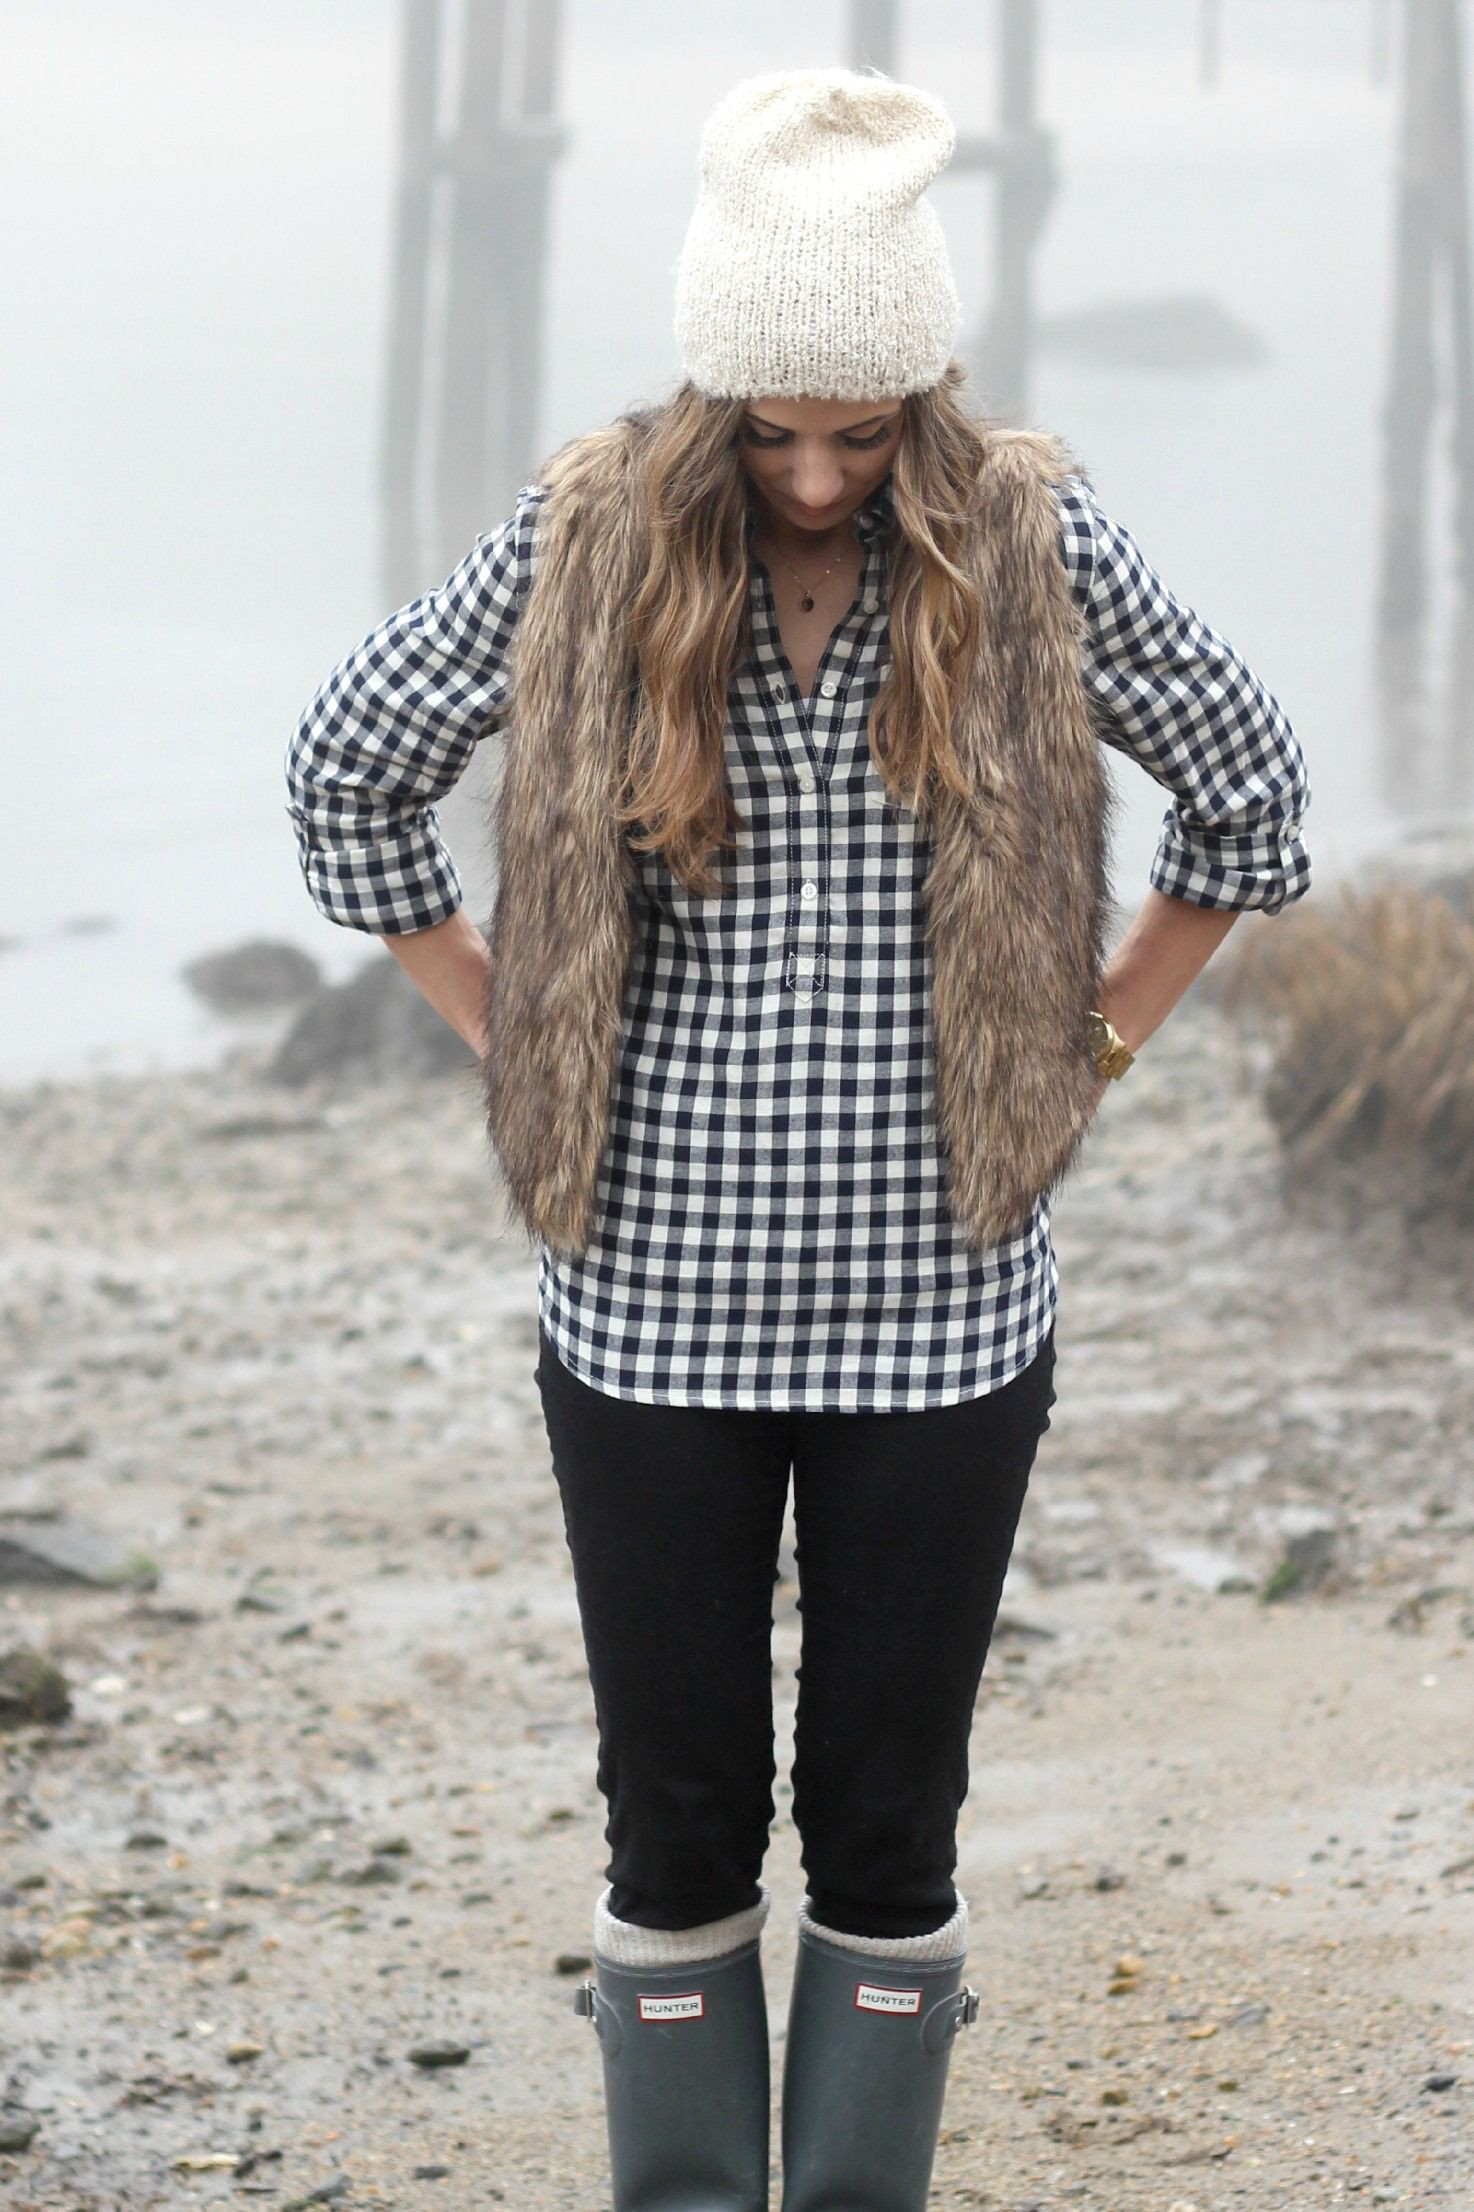 Black and white plaid shirt outfit